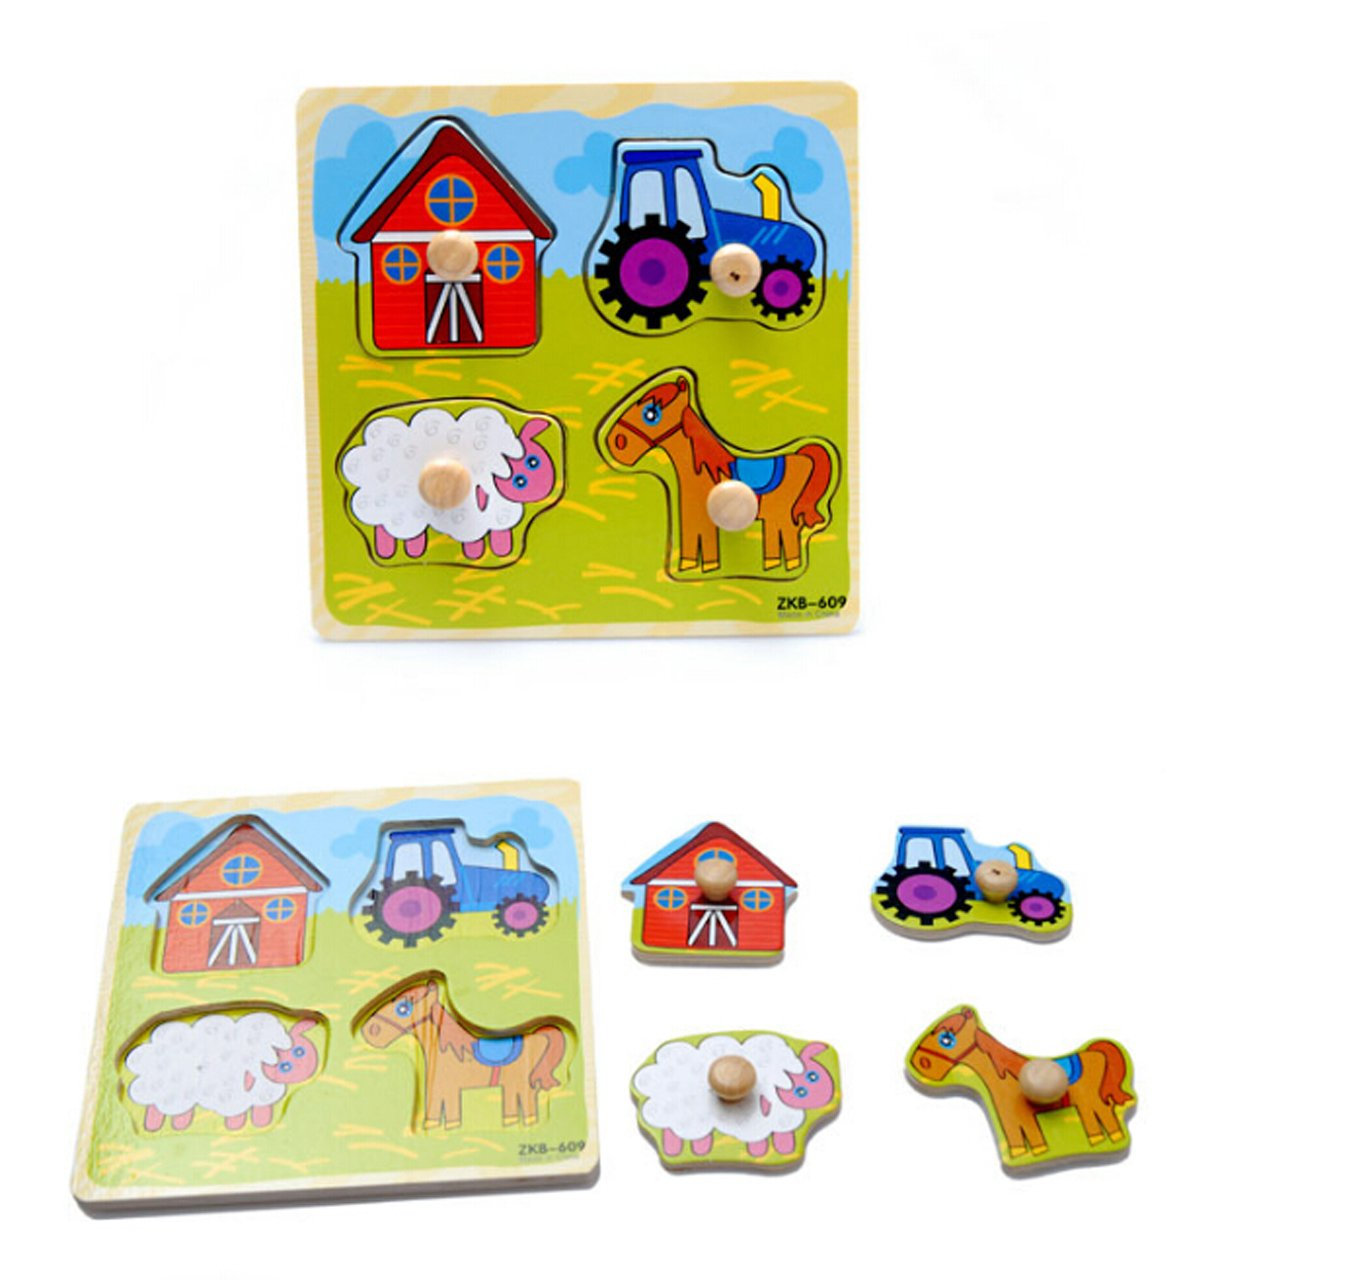 Gorgeous Toddler Baby Intelligence Development Wooden Colorful Brick Puzzle Toy